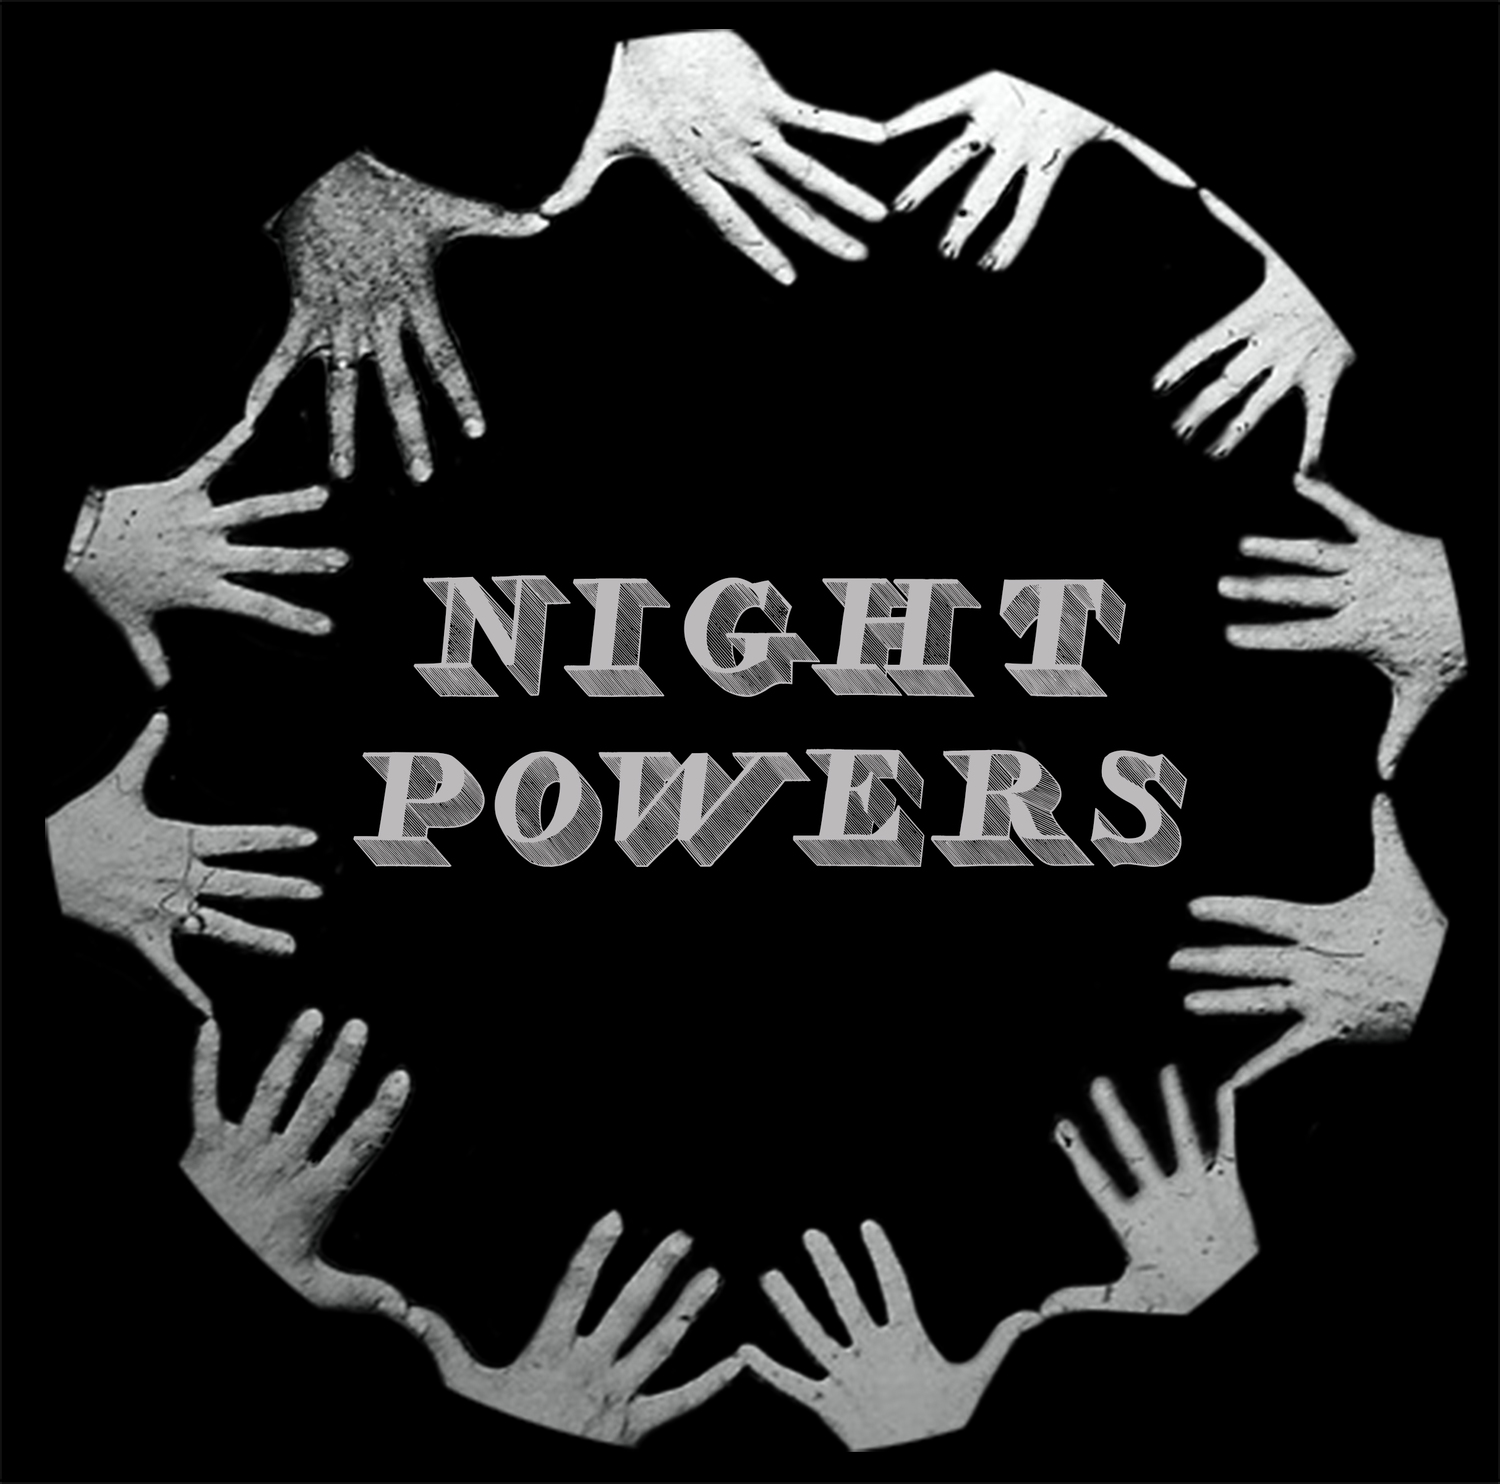 NIGHT POWERS is a band